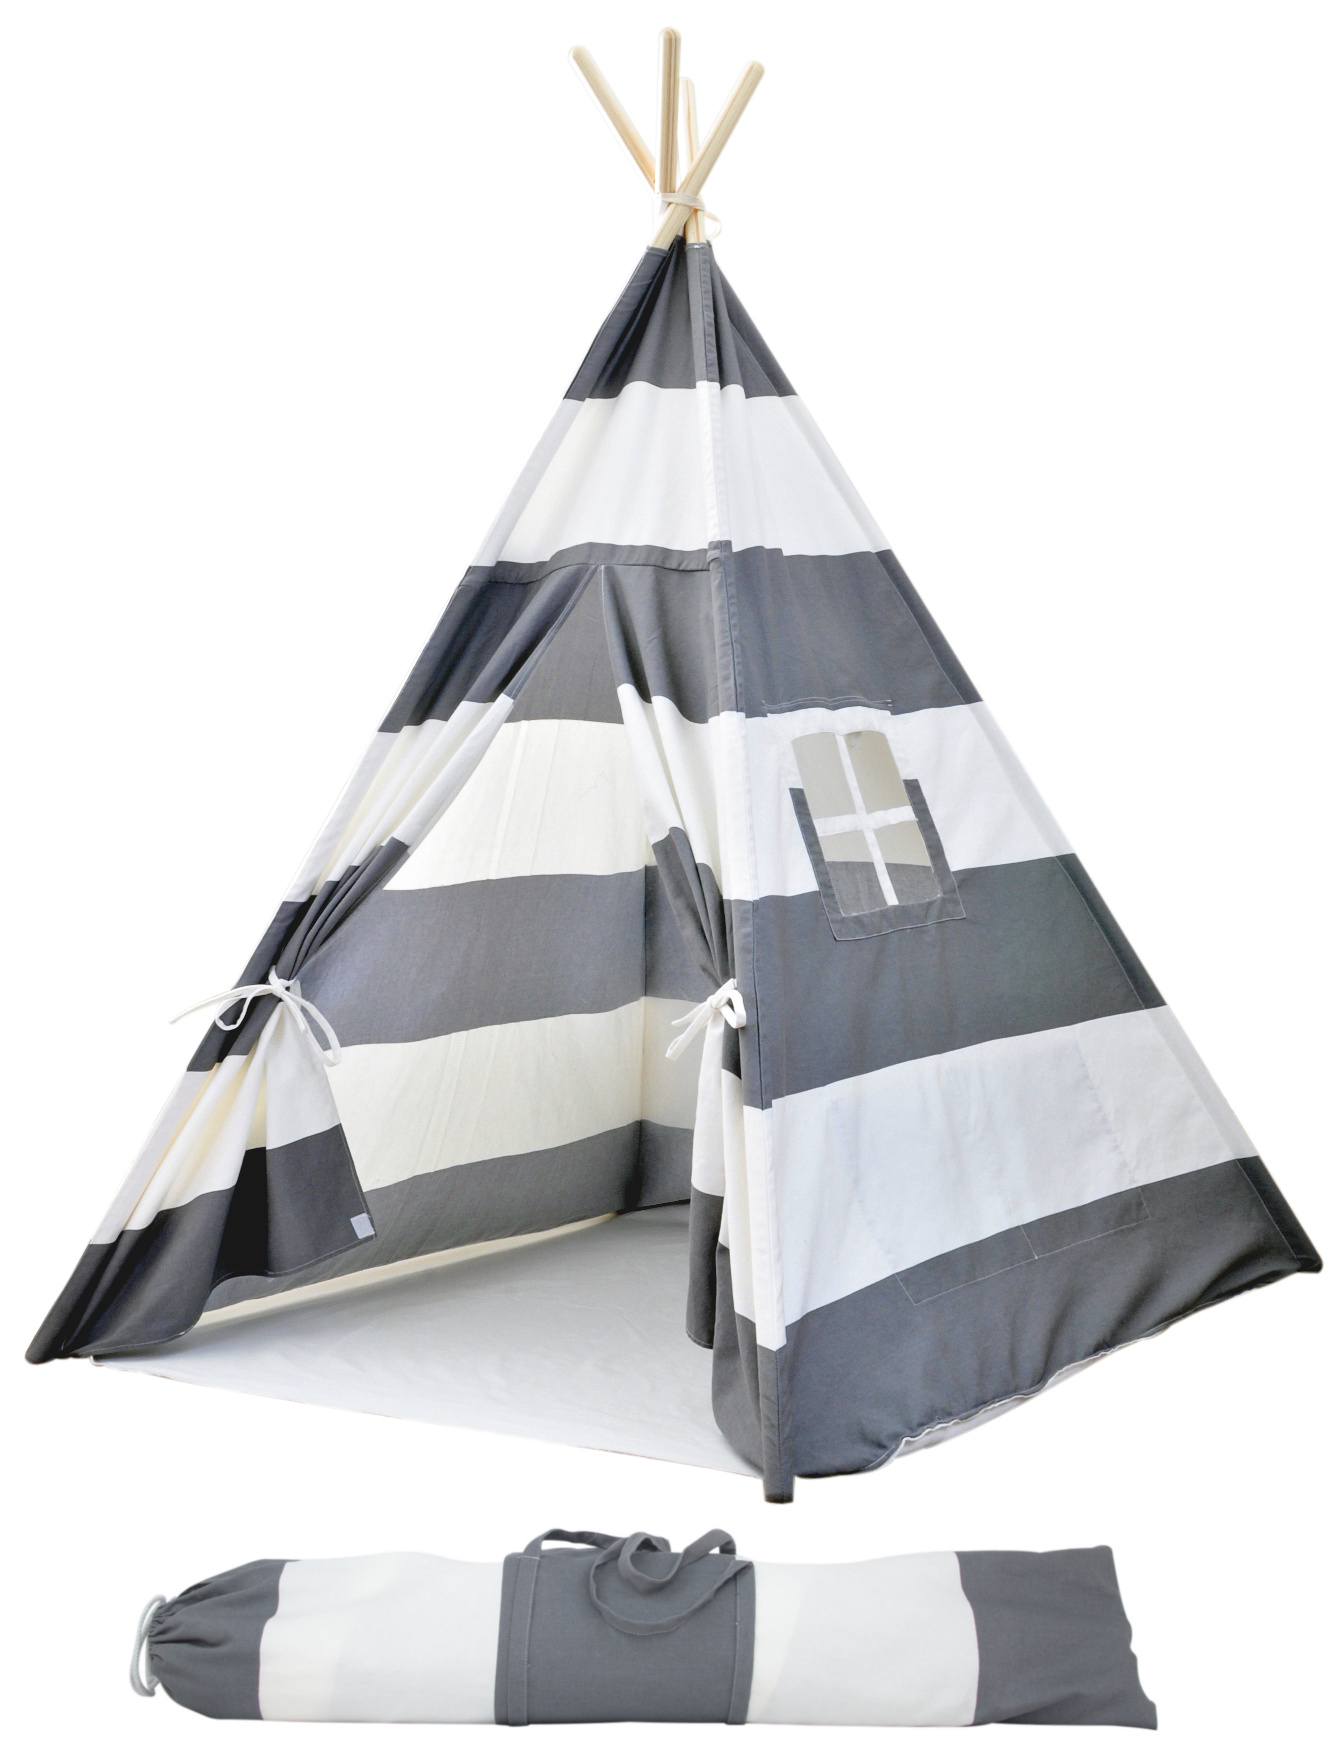 Teepee Kids Portable Canvas Teepee Tents For Kids With Carrying Case Large Gray Stripes